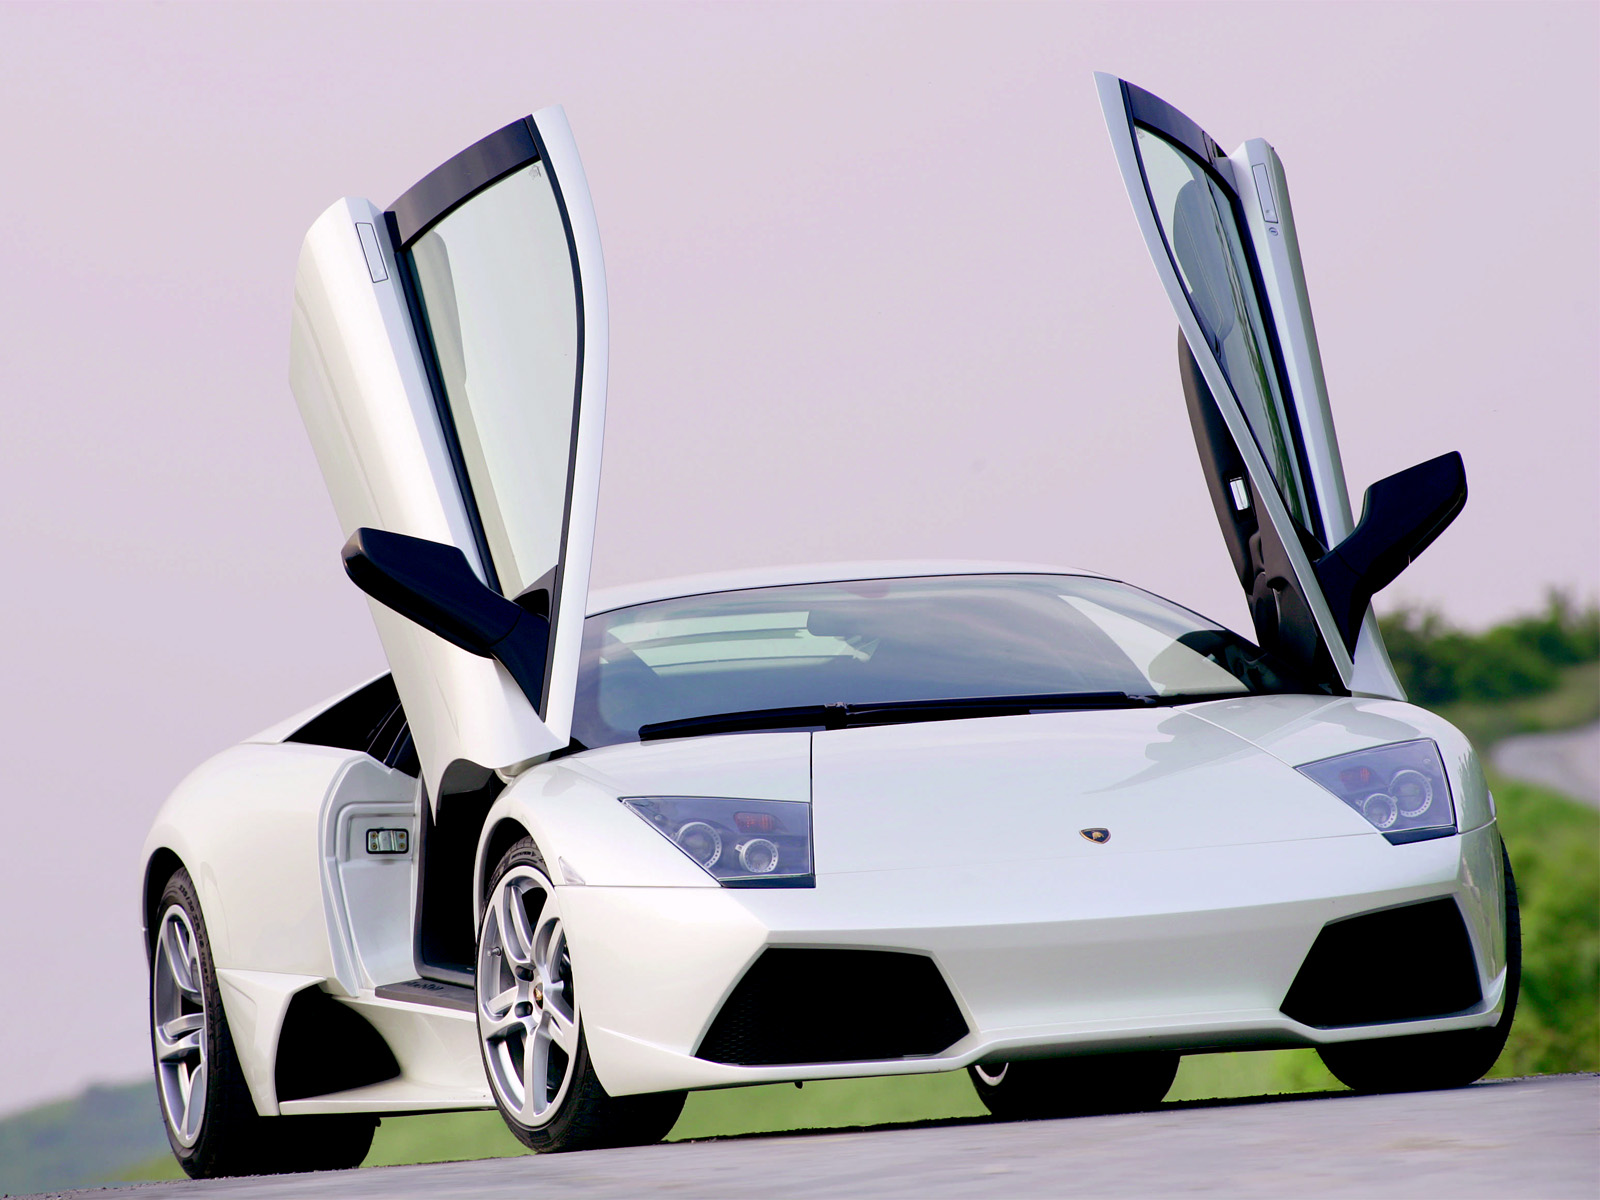 Cool car wallpaper high definition 4115